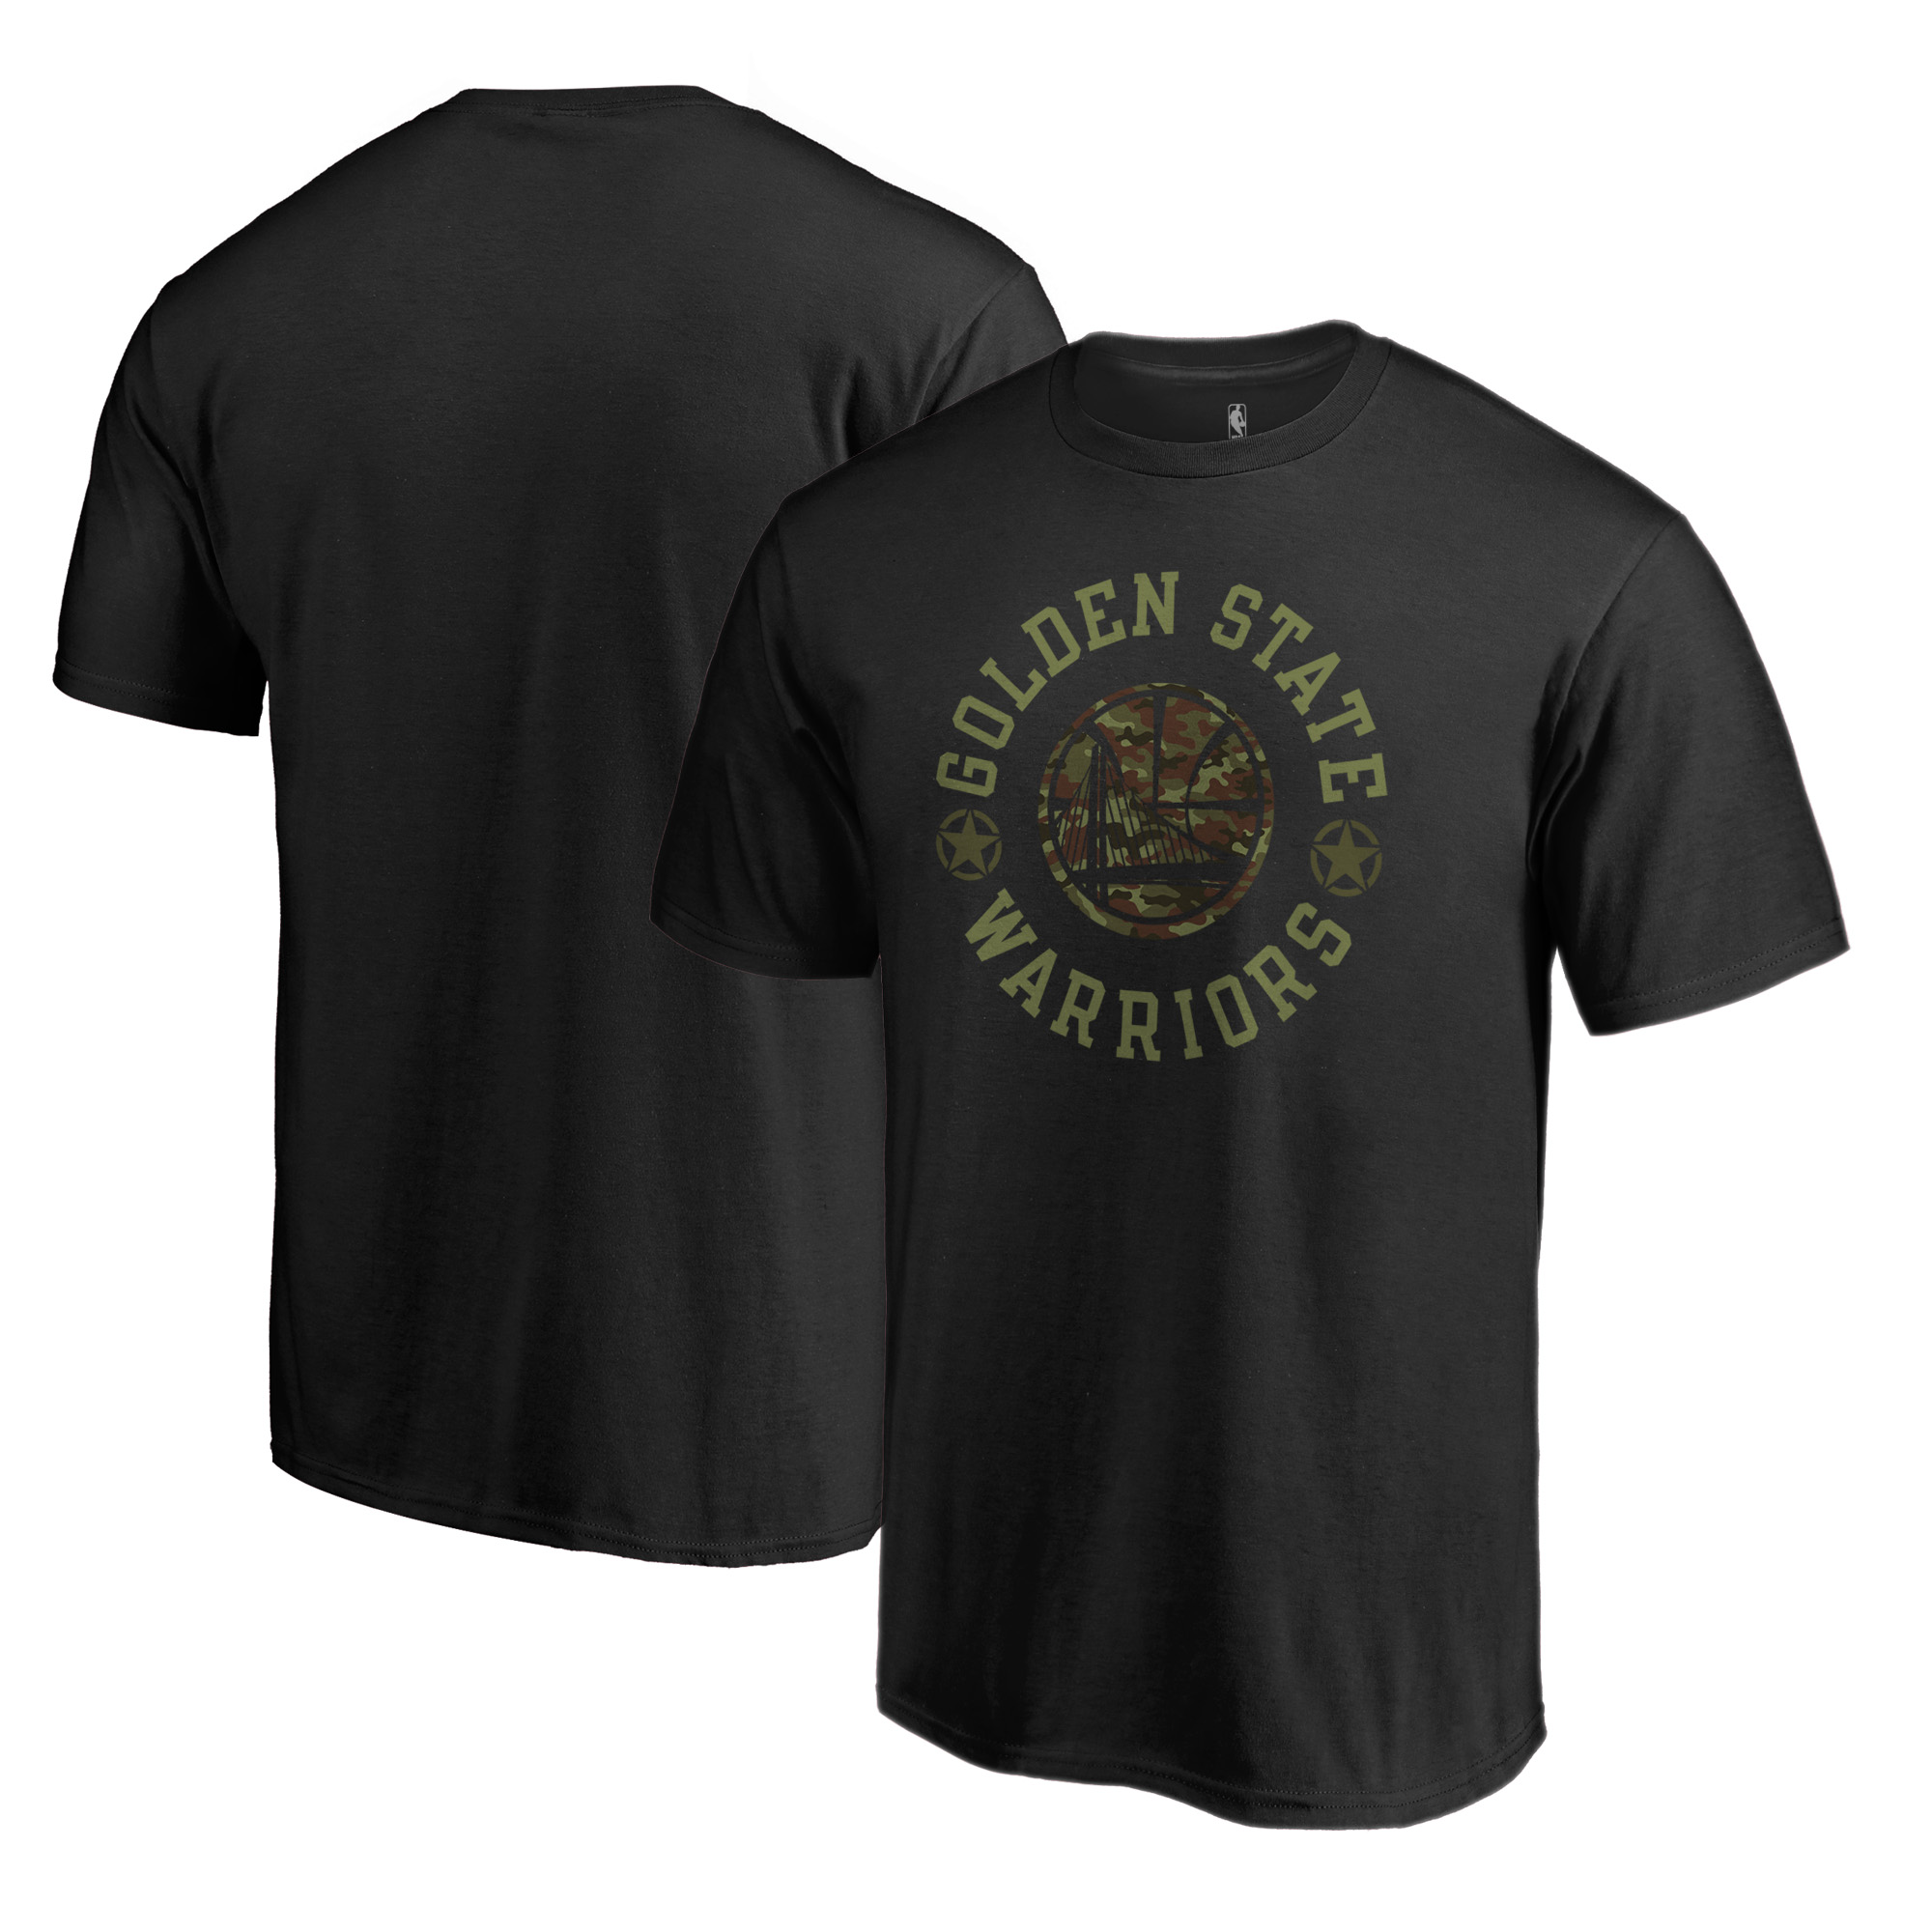 Golden State Warriors Fanatics Branded Liberty T-Shirt - Black